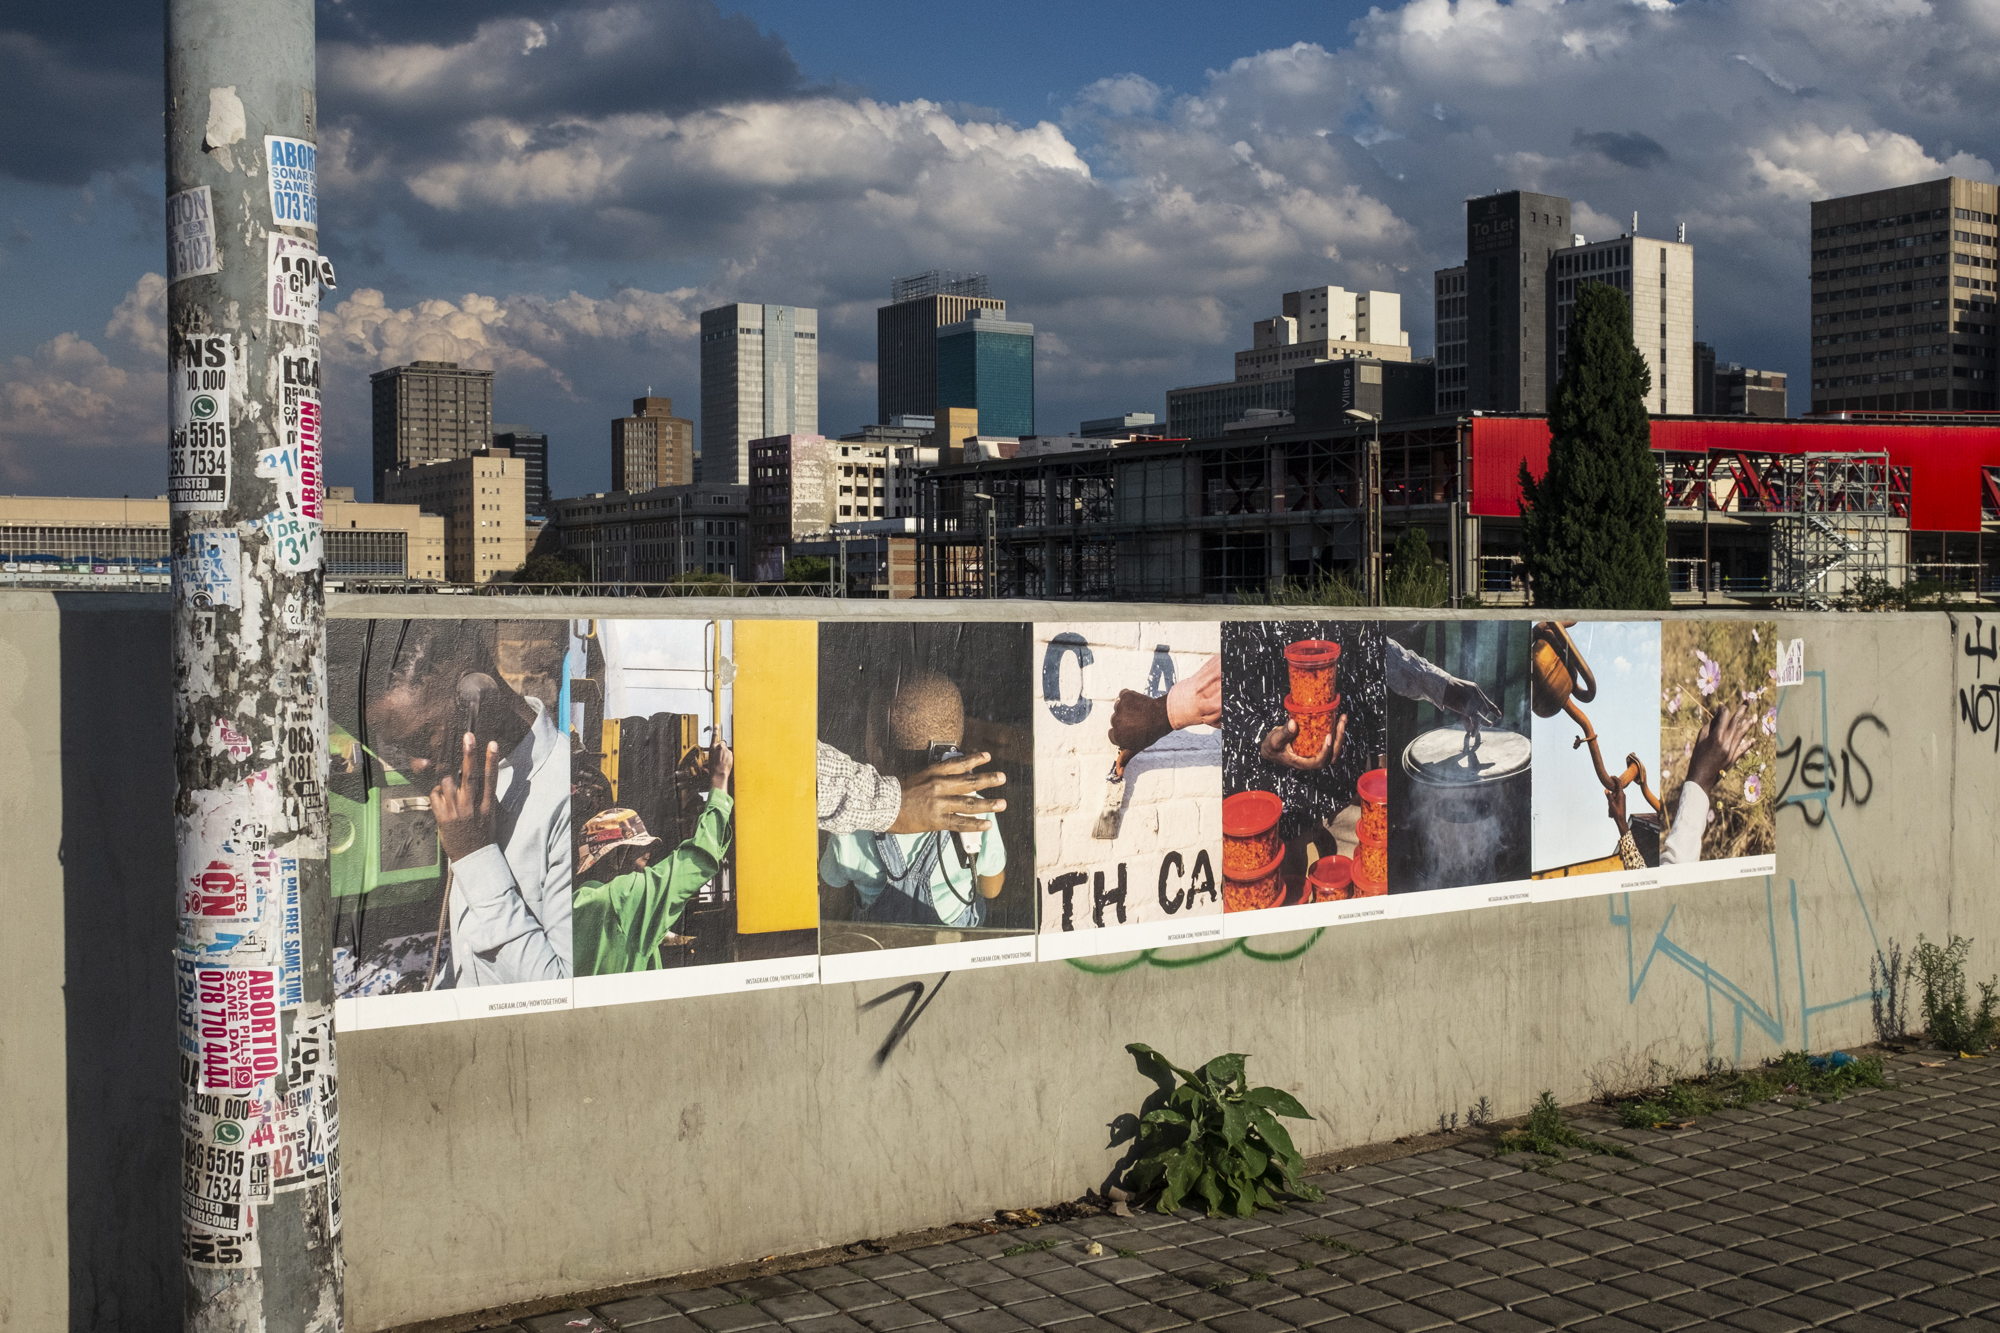 """Documentation of the street art exhibition of """"How to get home"""" in Johannesburg, South Africa, November 2019, funded by the Stiftung Kulturwerk Grant. Poster set in Johannesburg CBD, Queen Elizabeth Bridge on Nov 23rd, 2019."""